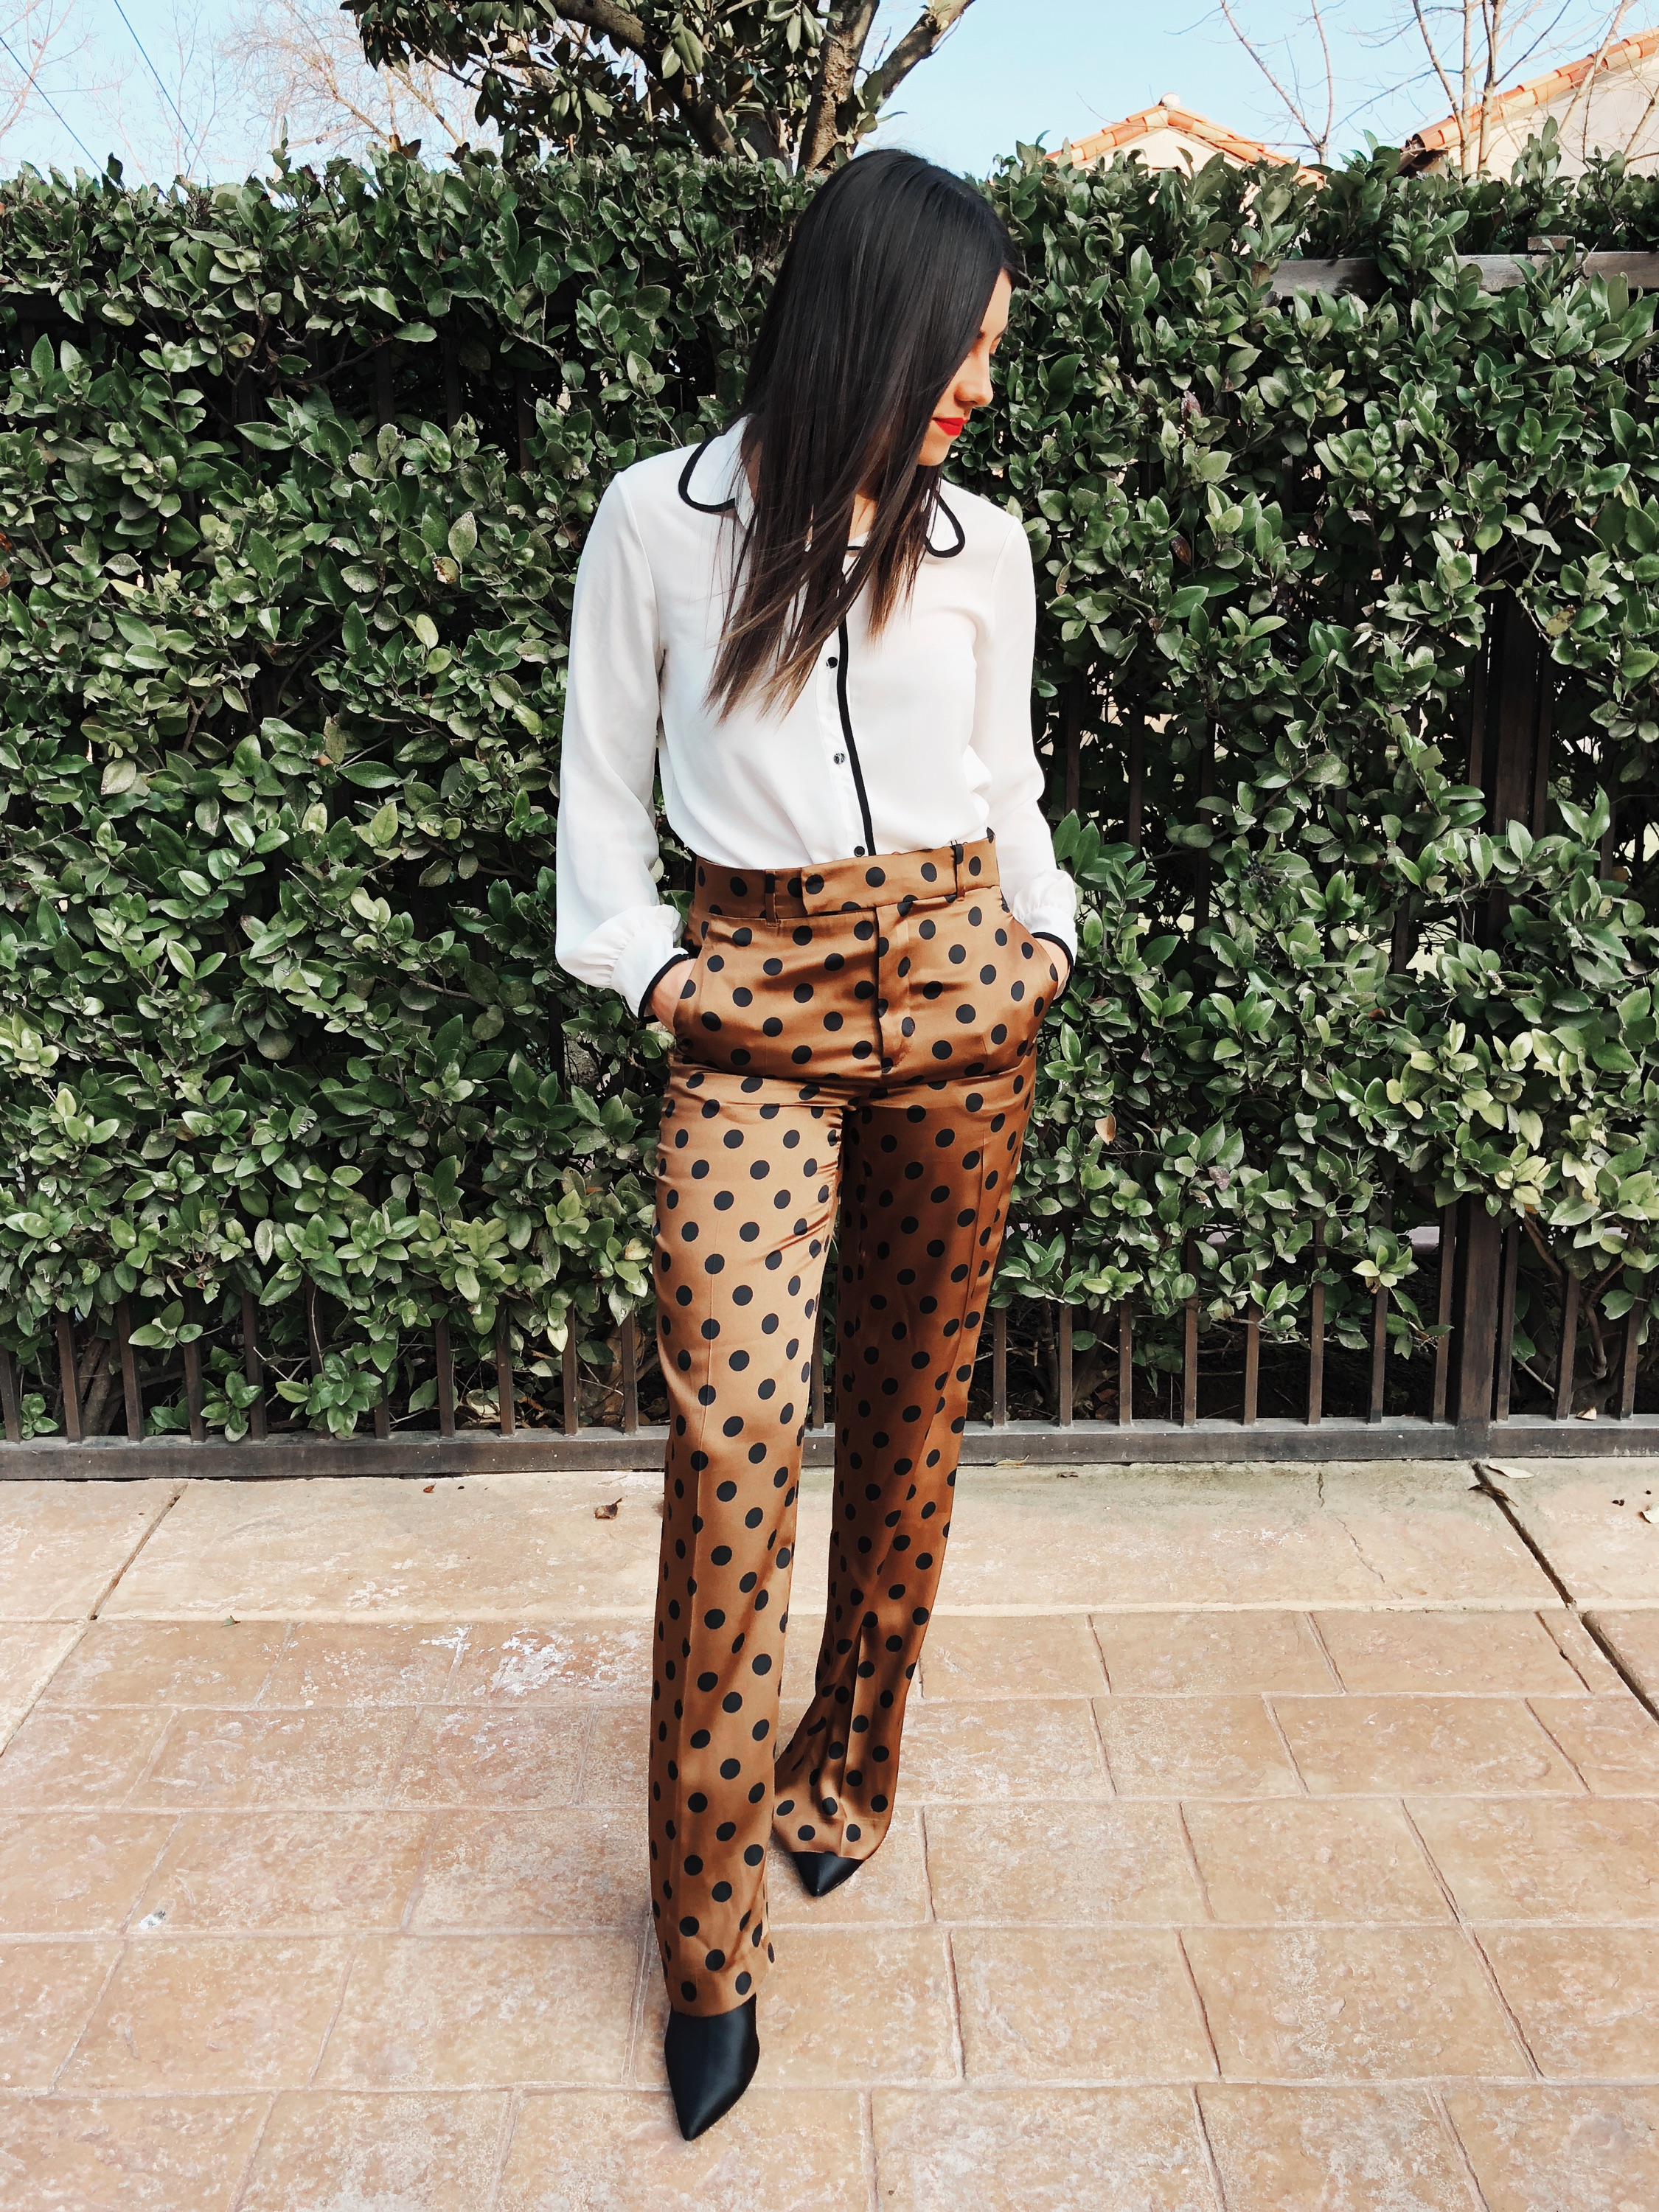 A MEETING - A classic which blouse can be paired with just about anything. Yes, even polka dot pants.